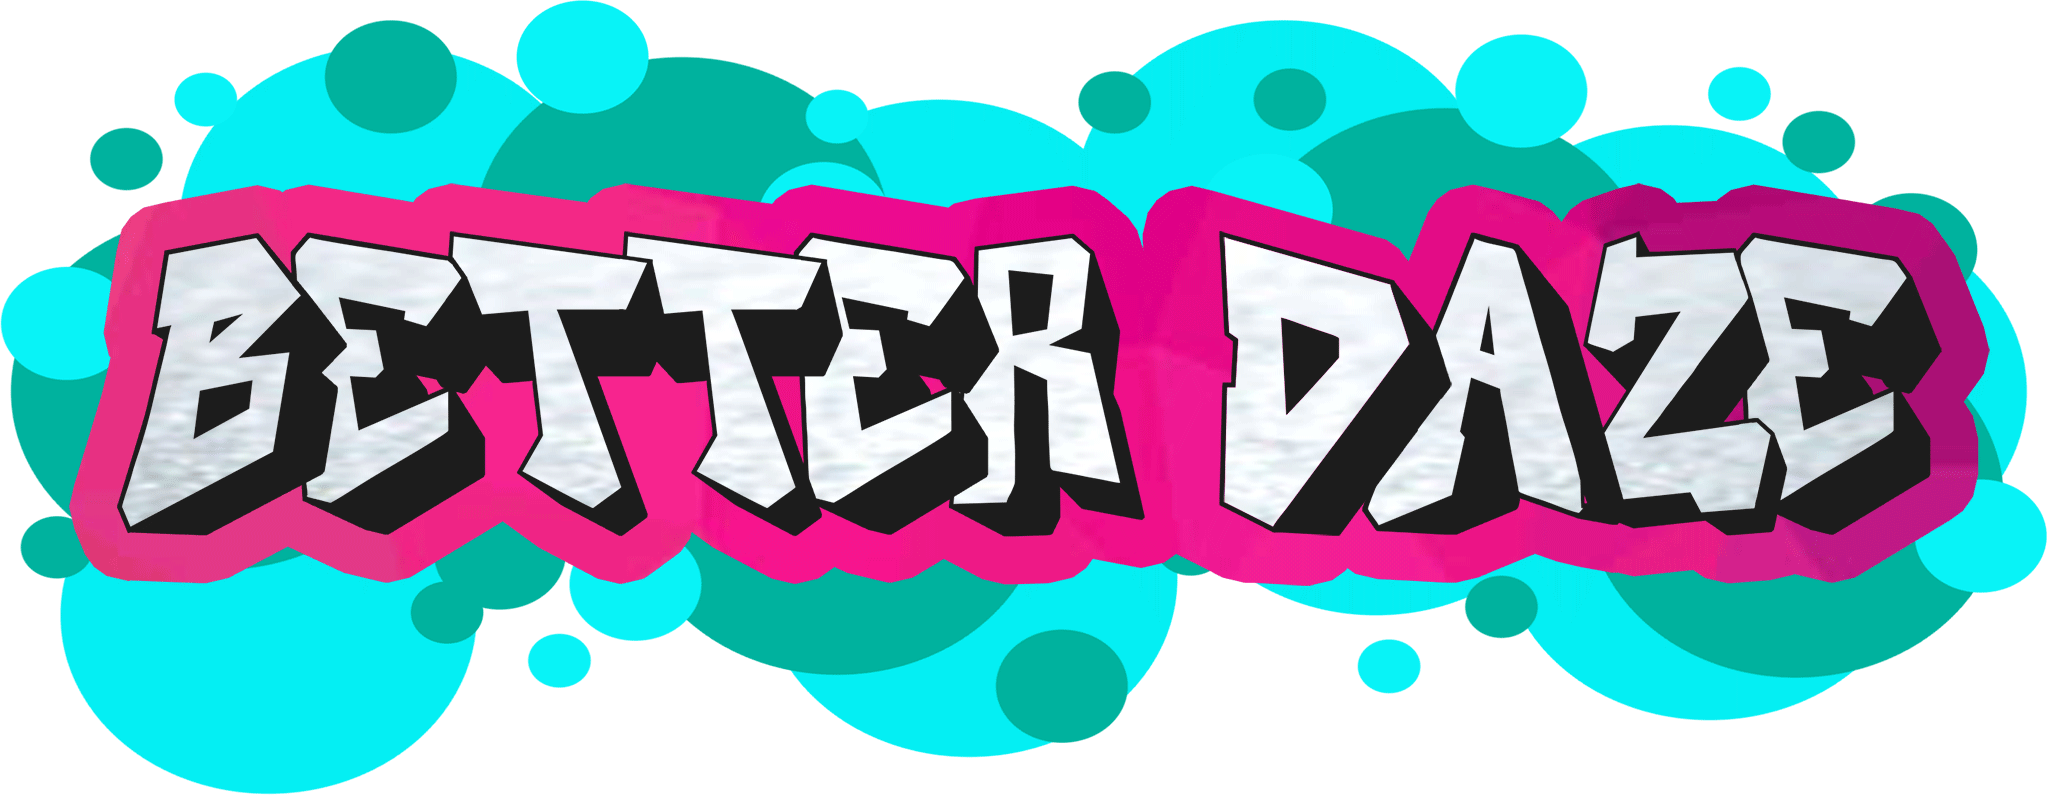 Better days are here!